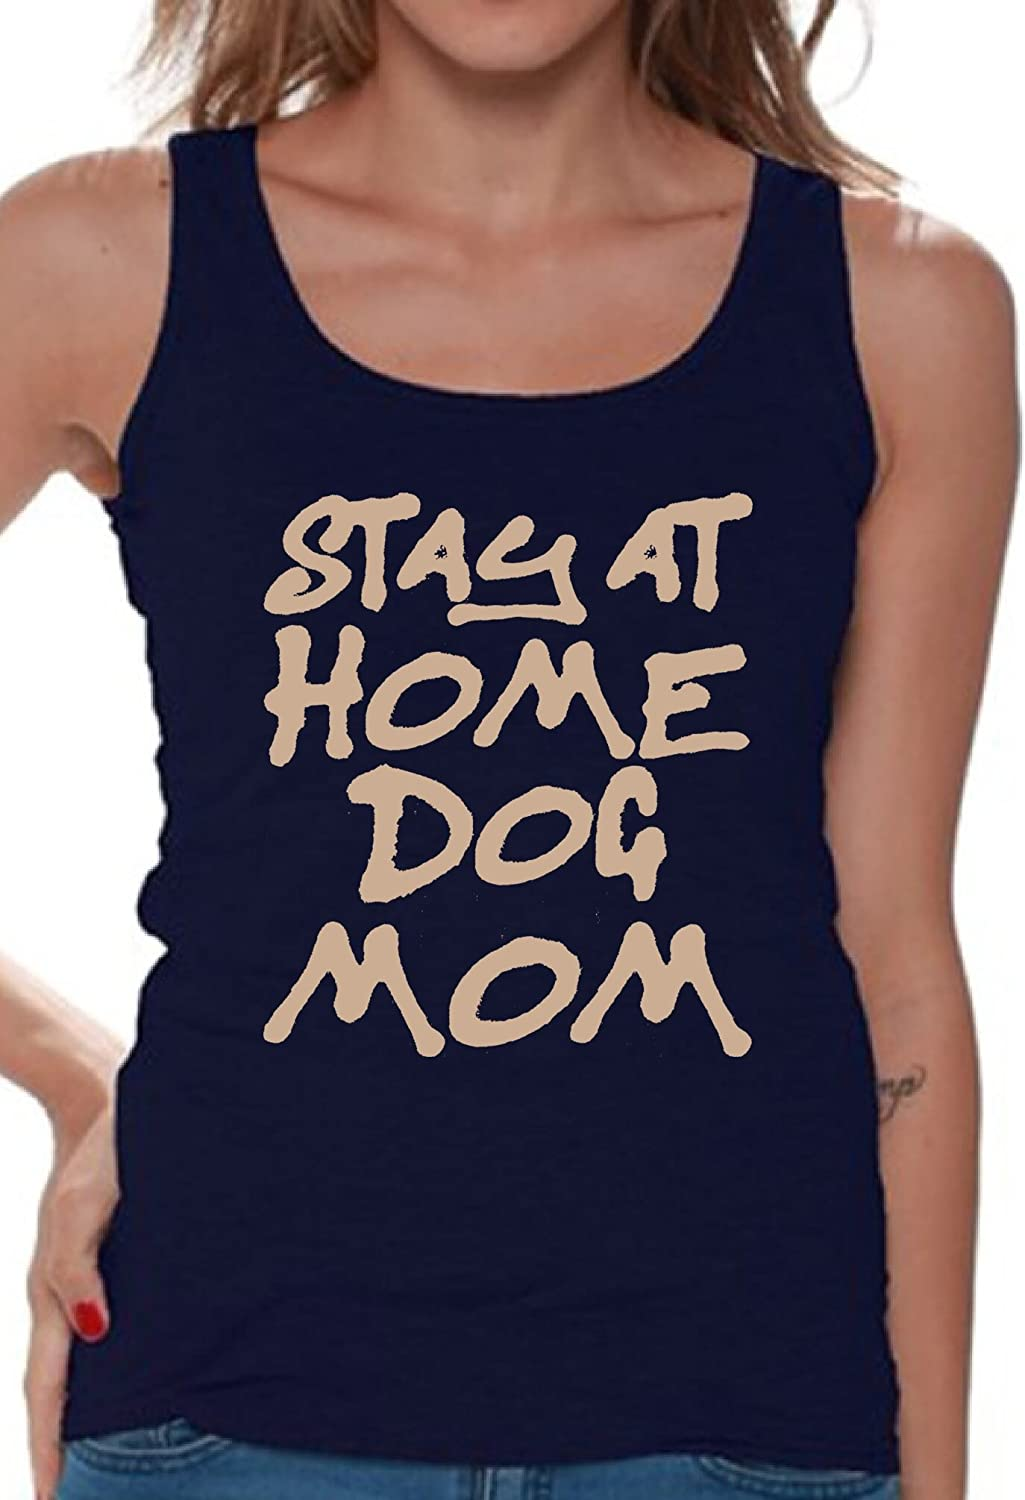 Awkward Styles Women's Stay at Home Dog Mom Graphic Tank Tops for Dog Lovers